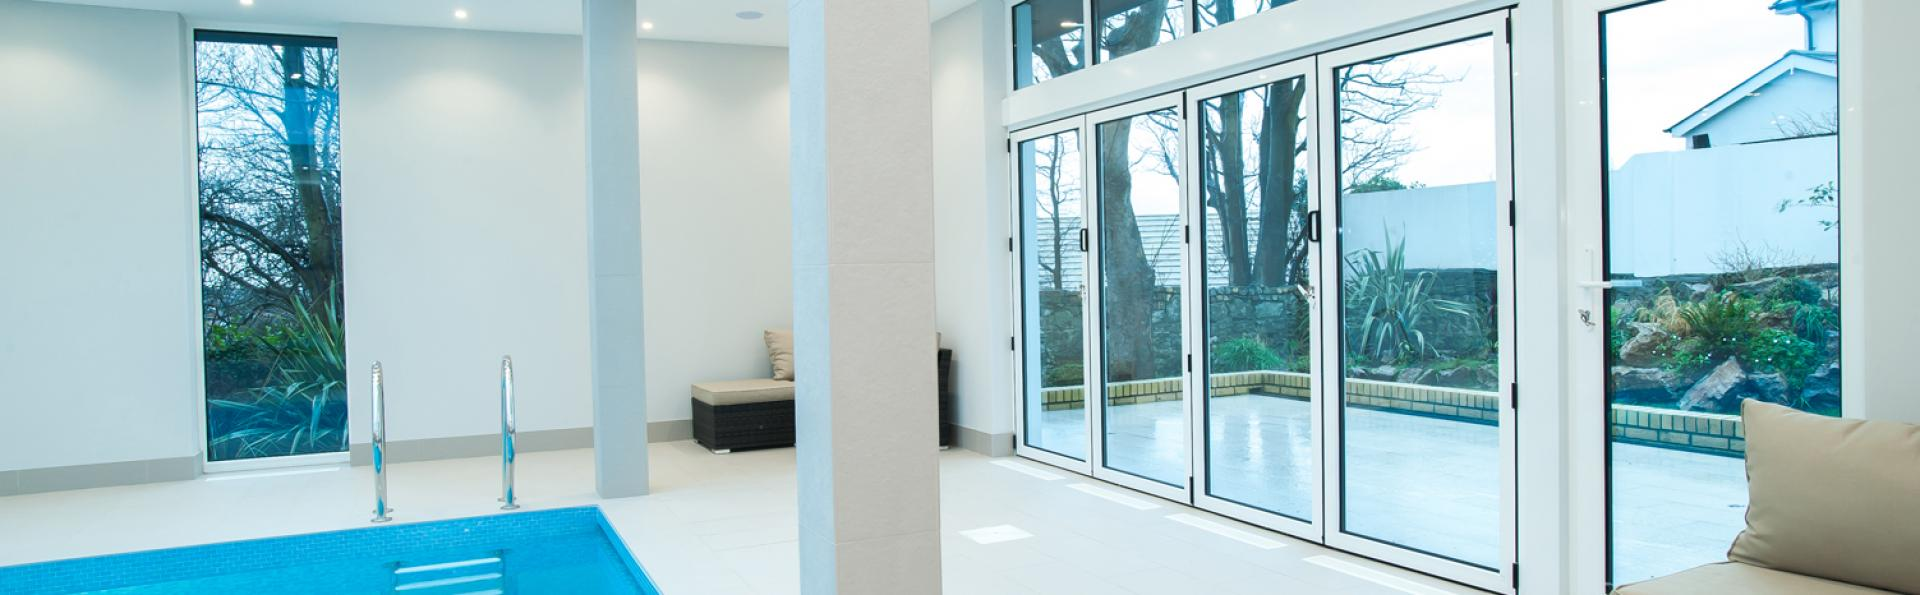 Aluminium bi fold doors by a swimming pool